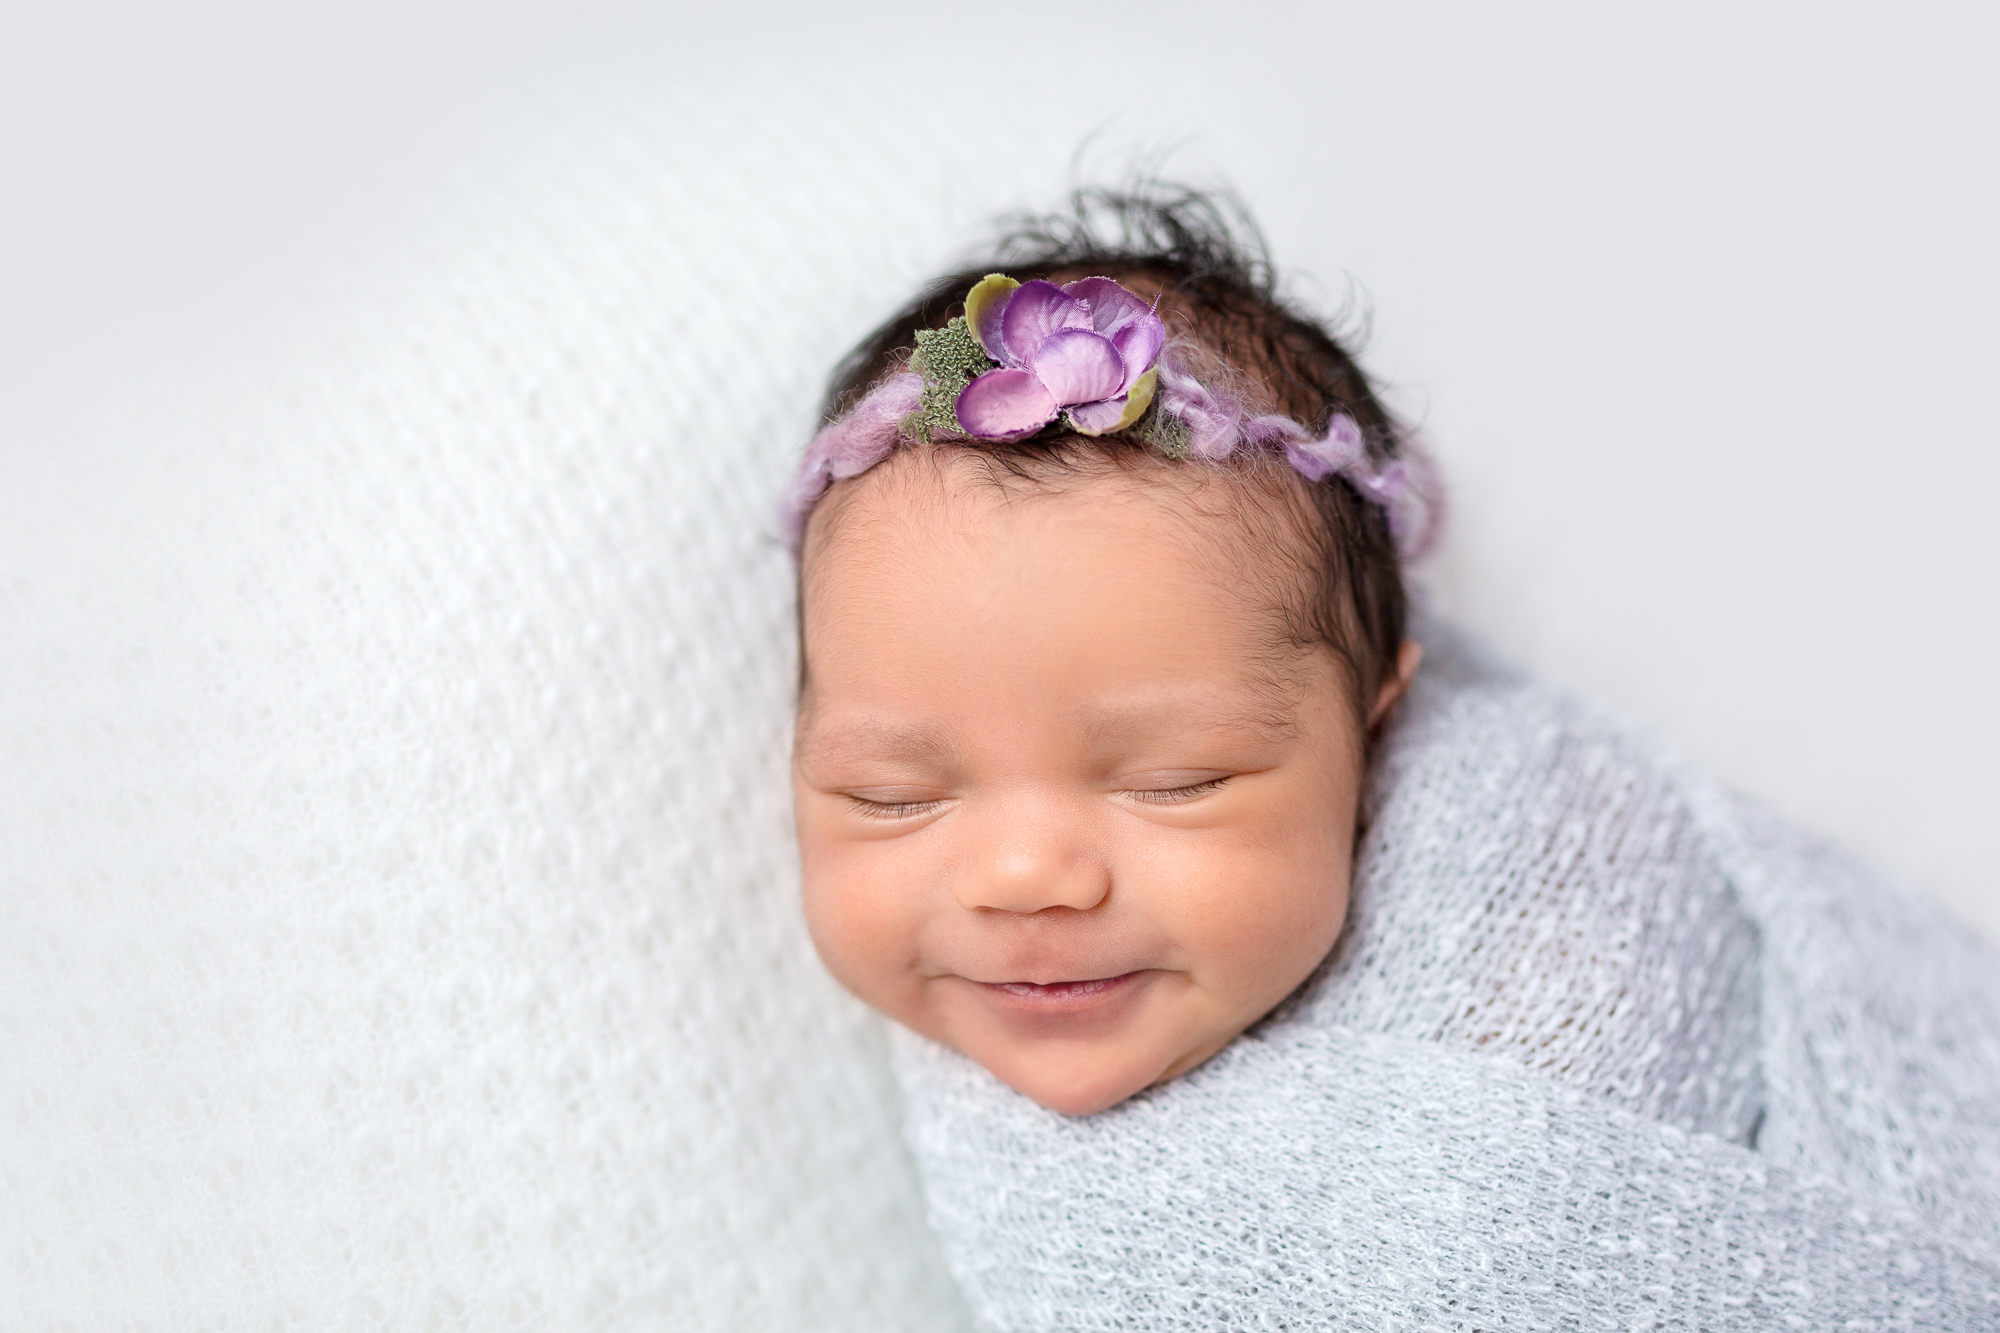 Extensive newborn photography education and training has taught me how to properly care for and position newborn babies and my newborn pictures are now so much more professional and better looking.